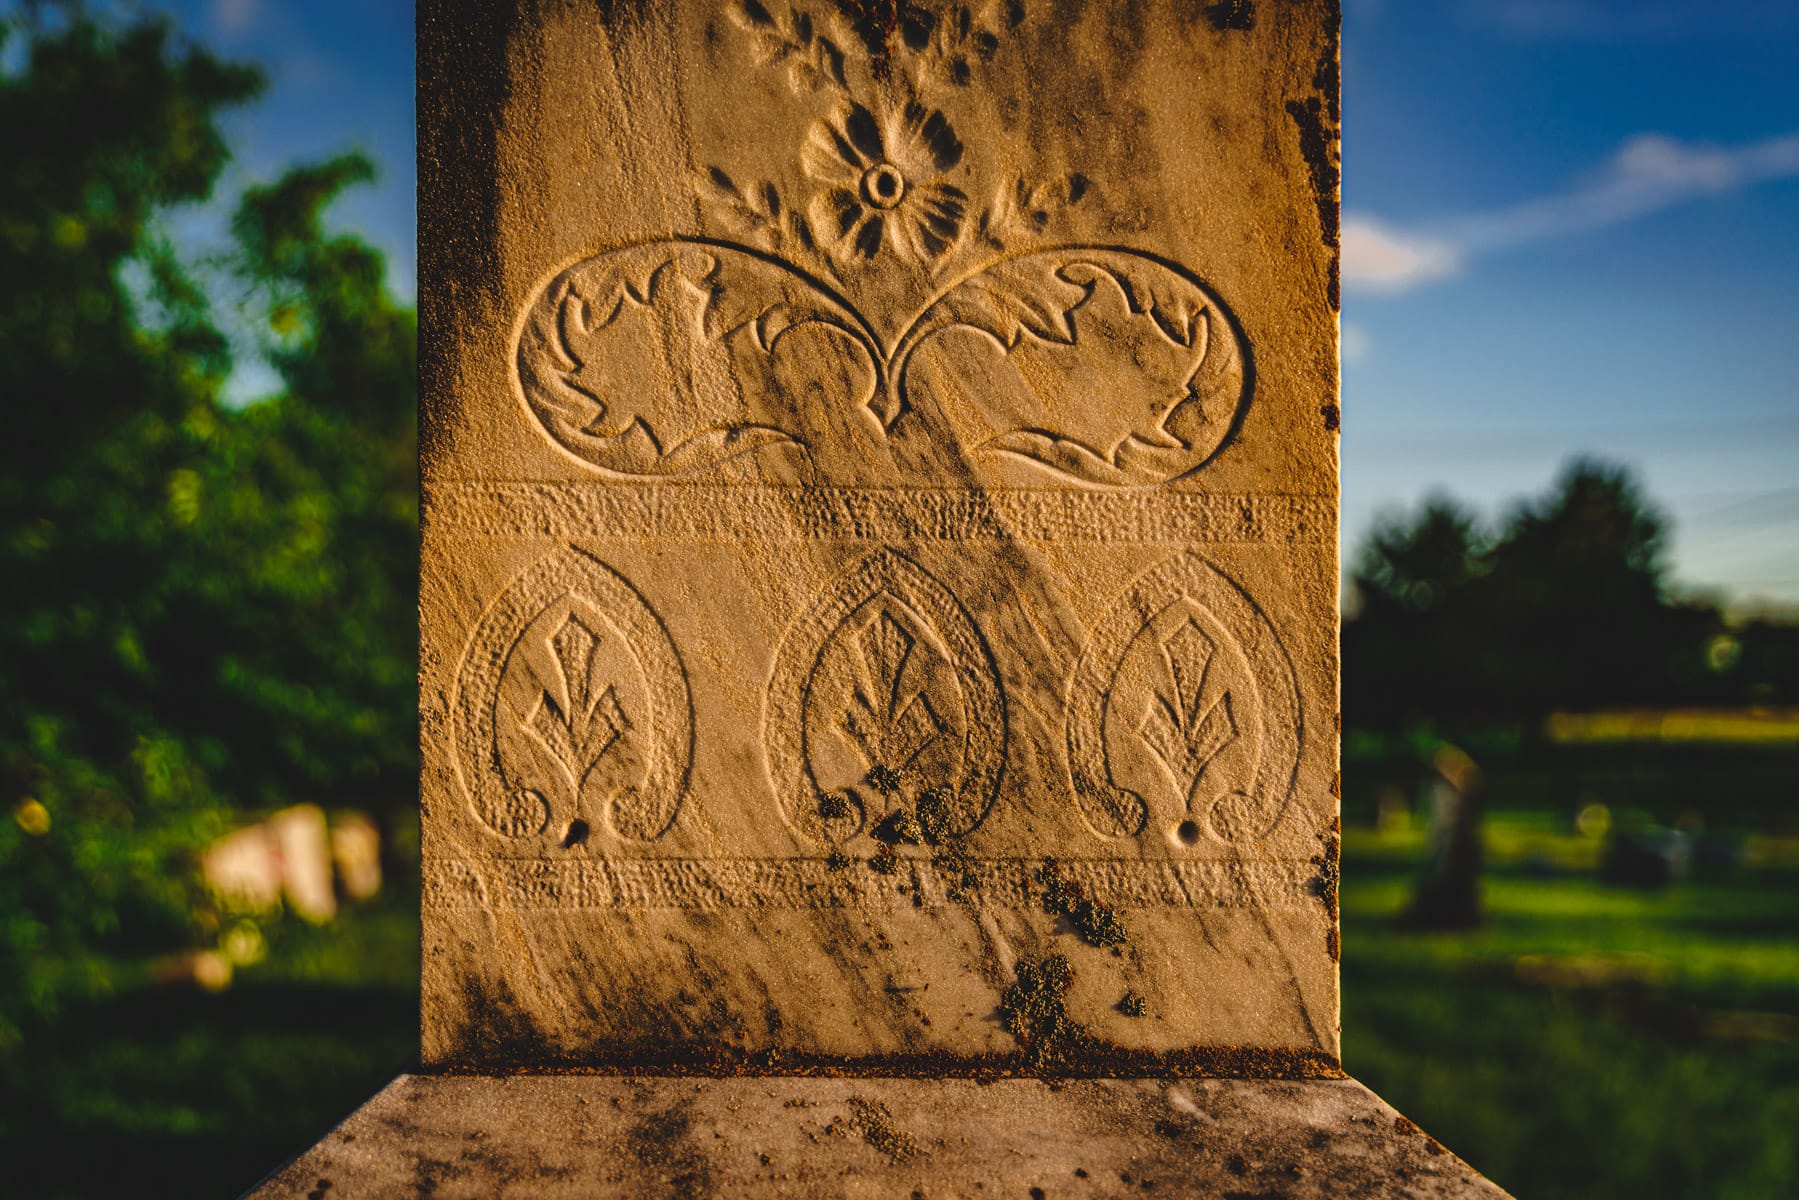 Detail of carvings on an old grave at Chambersville Cemetery, Chambersville, Texas.